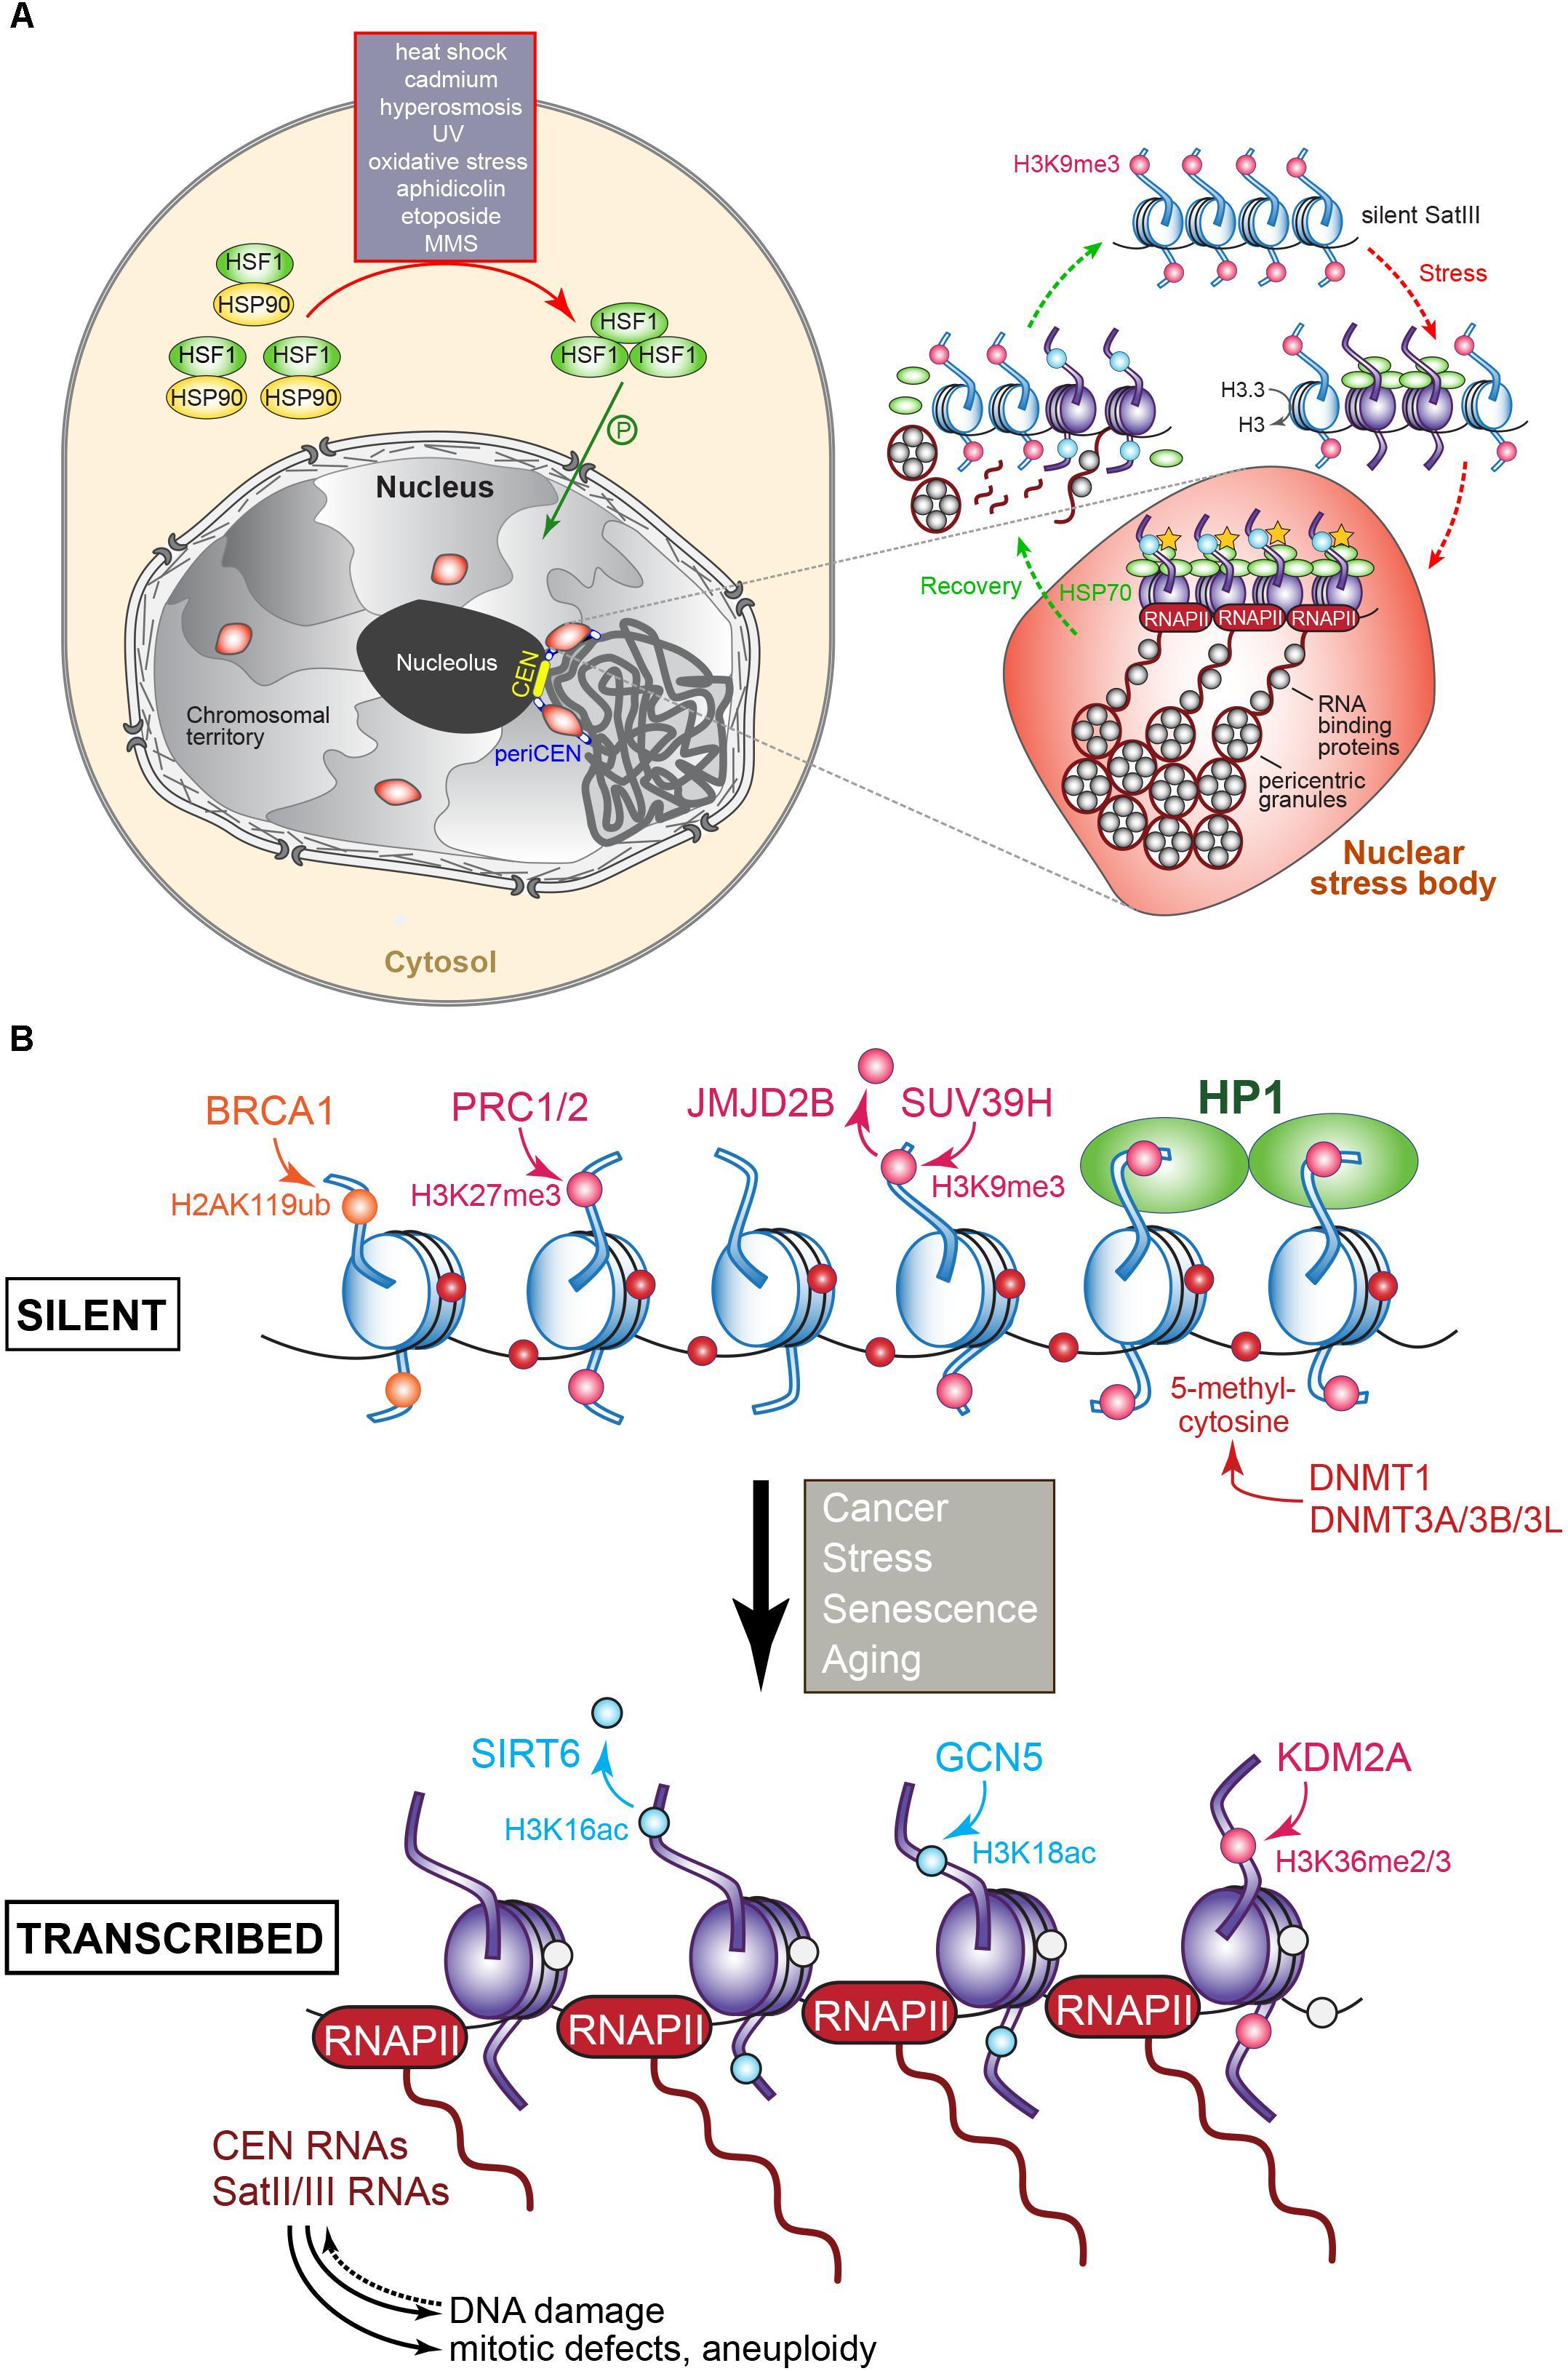 Frontiers | Centromere and Pericentromere Transcription: Roles and